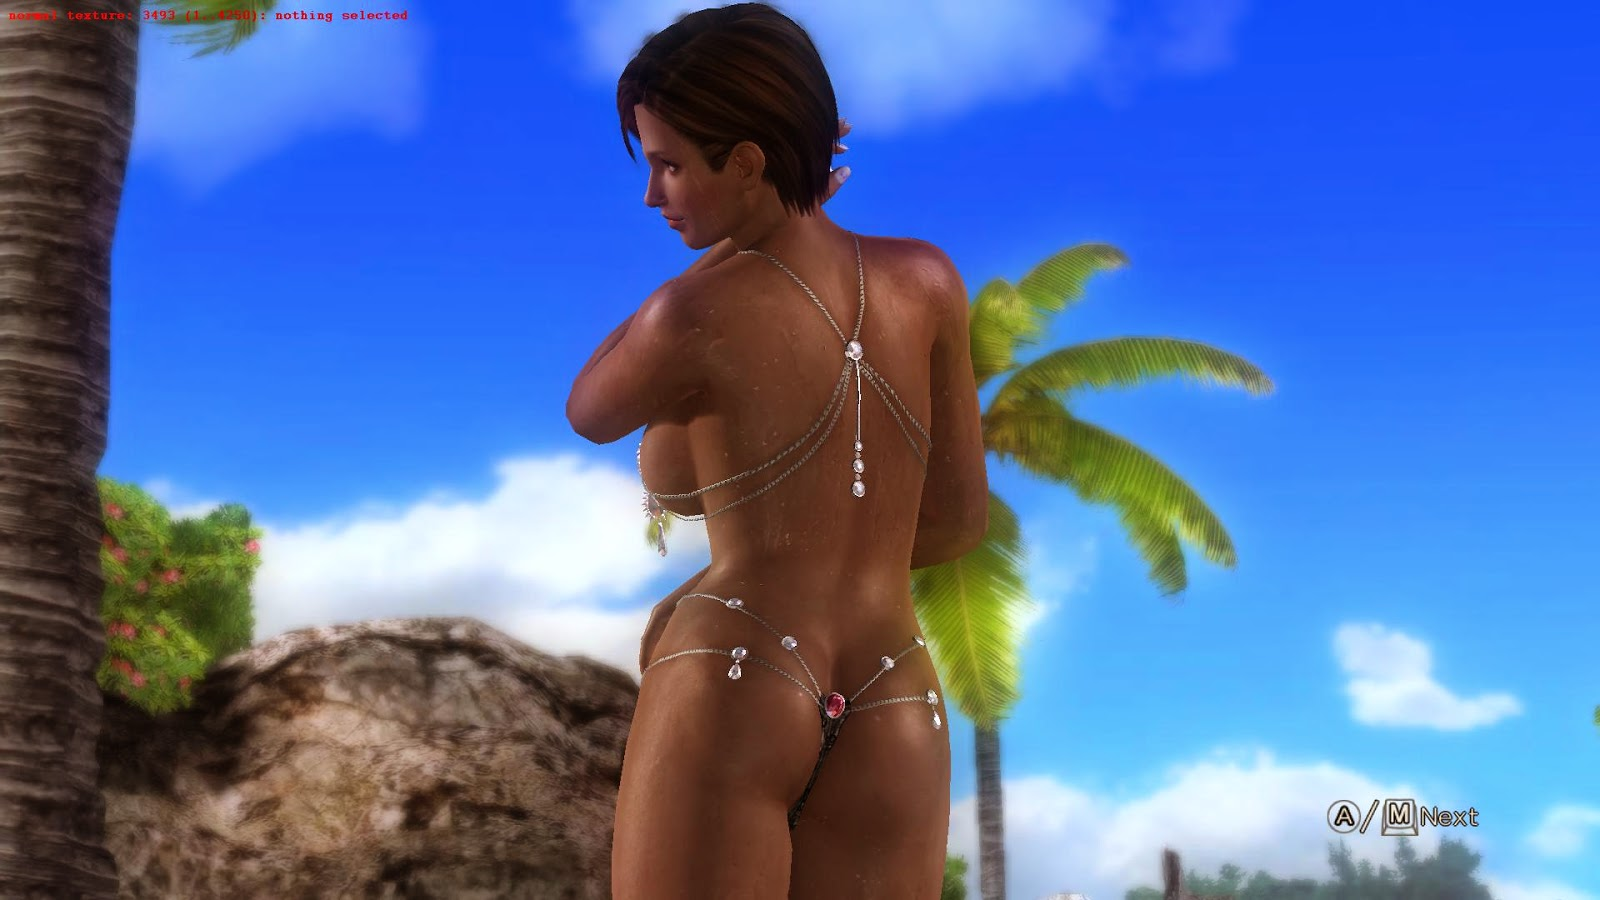 Games with nude cheats nackt photo